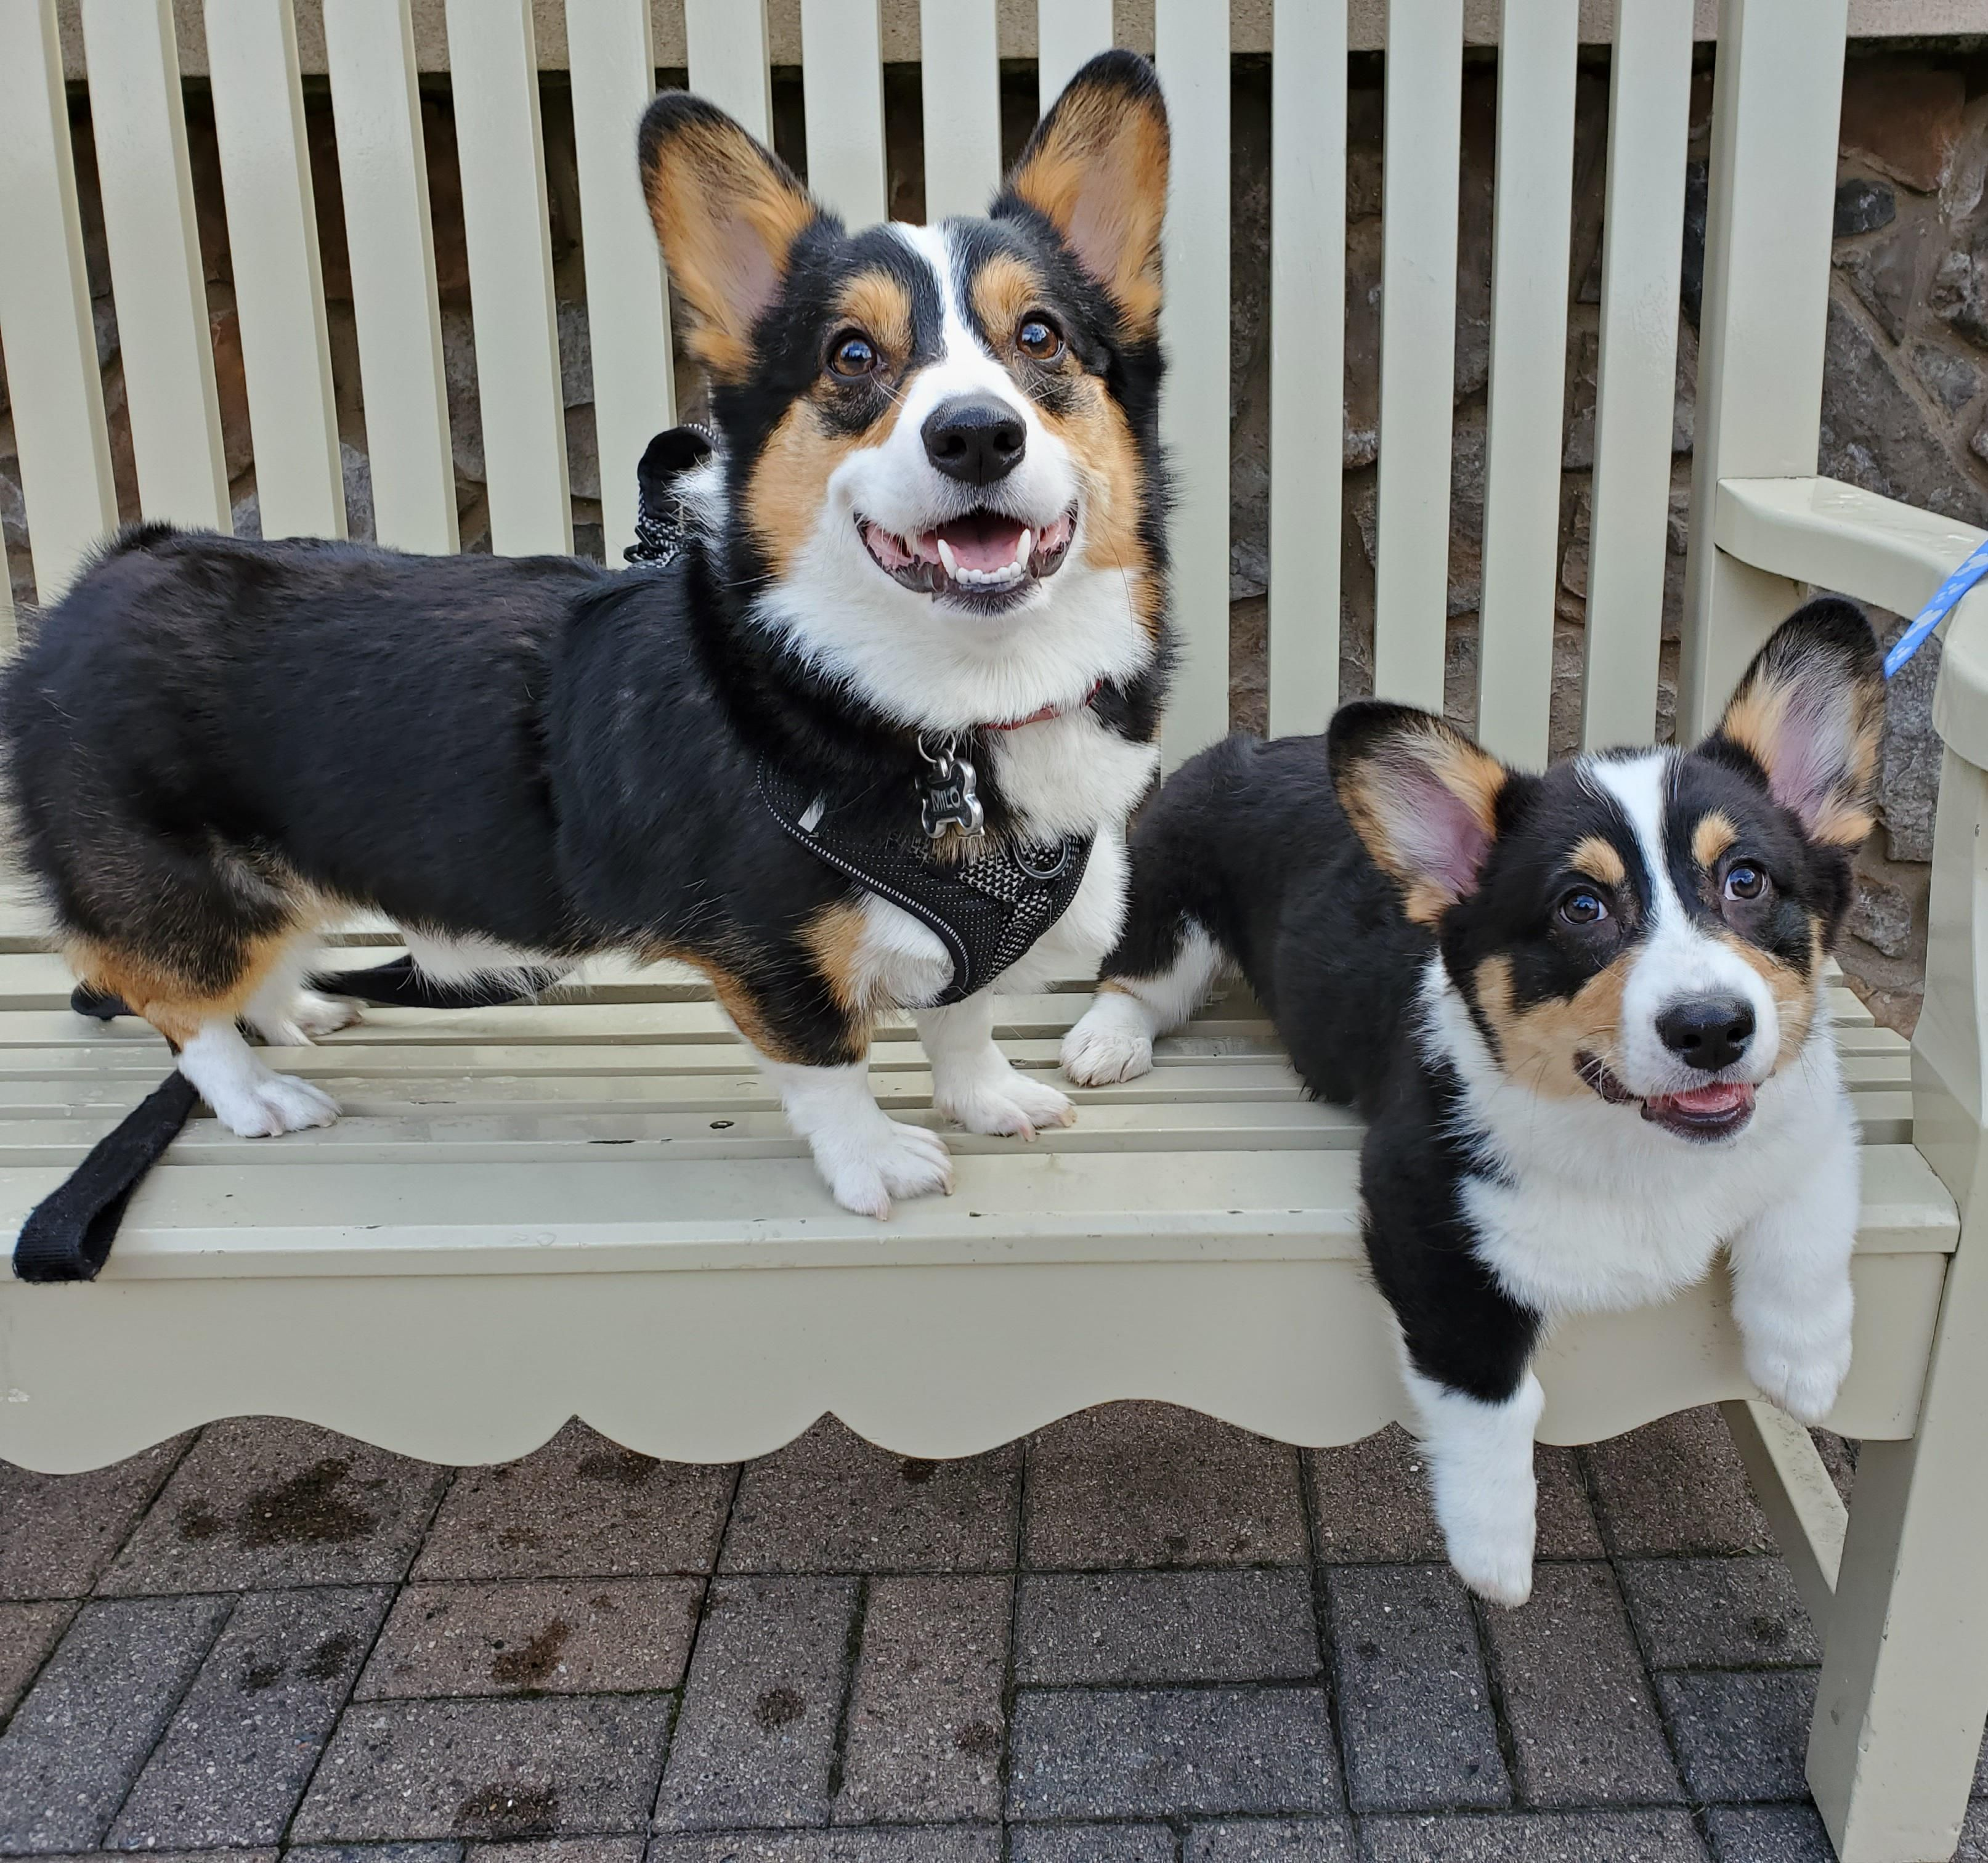 My two happy boys on a park bench 😃😃